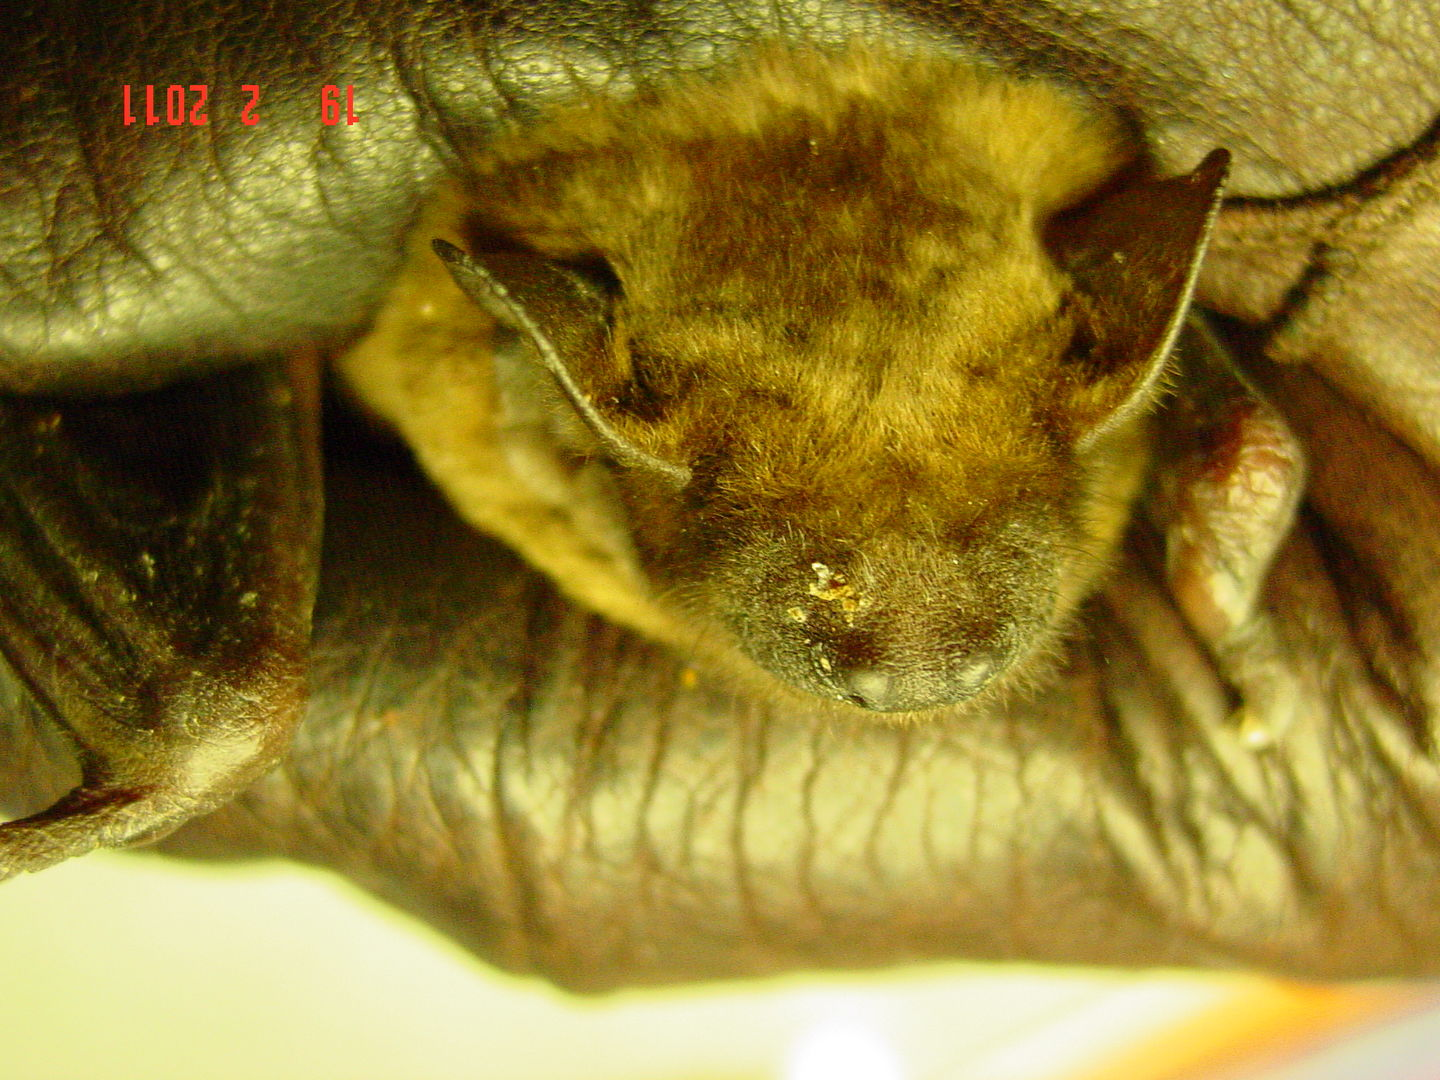 das Foto zeigt das verletzte Gesucht eines Großen Abendseglers. DAs Tier ist mittlerweile wieder gesund. The photo shows a Nyctalus noctula with face injury. The bat now is health again.